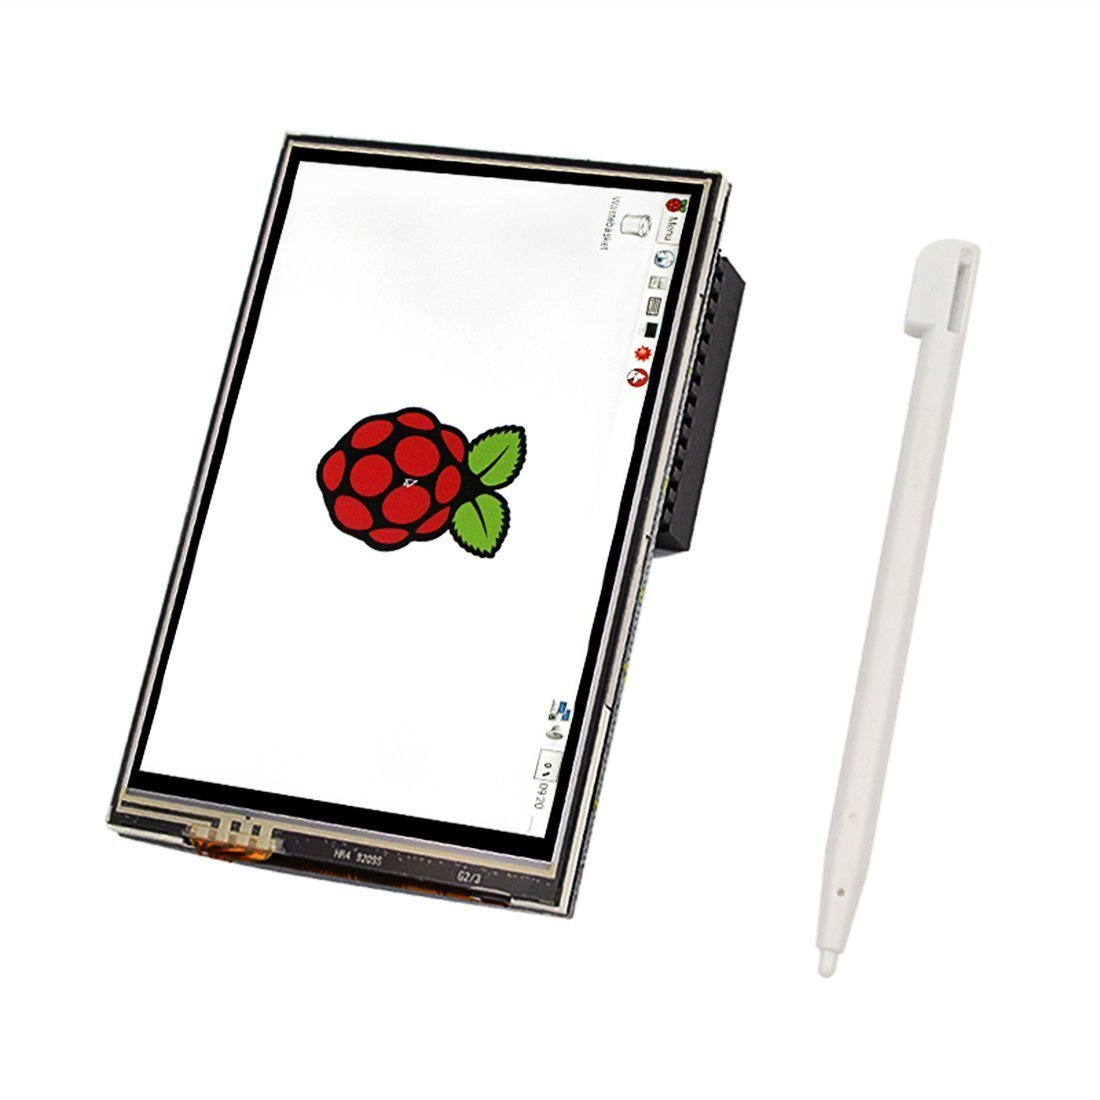 Etoput Raspberry Pi 3.5 inch TFT LCD Touch Screen with 9 Layers Case (for pi 3 b+)